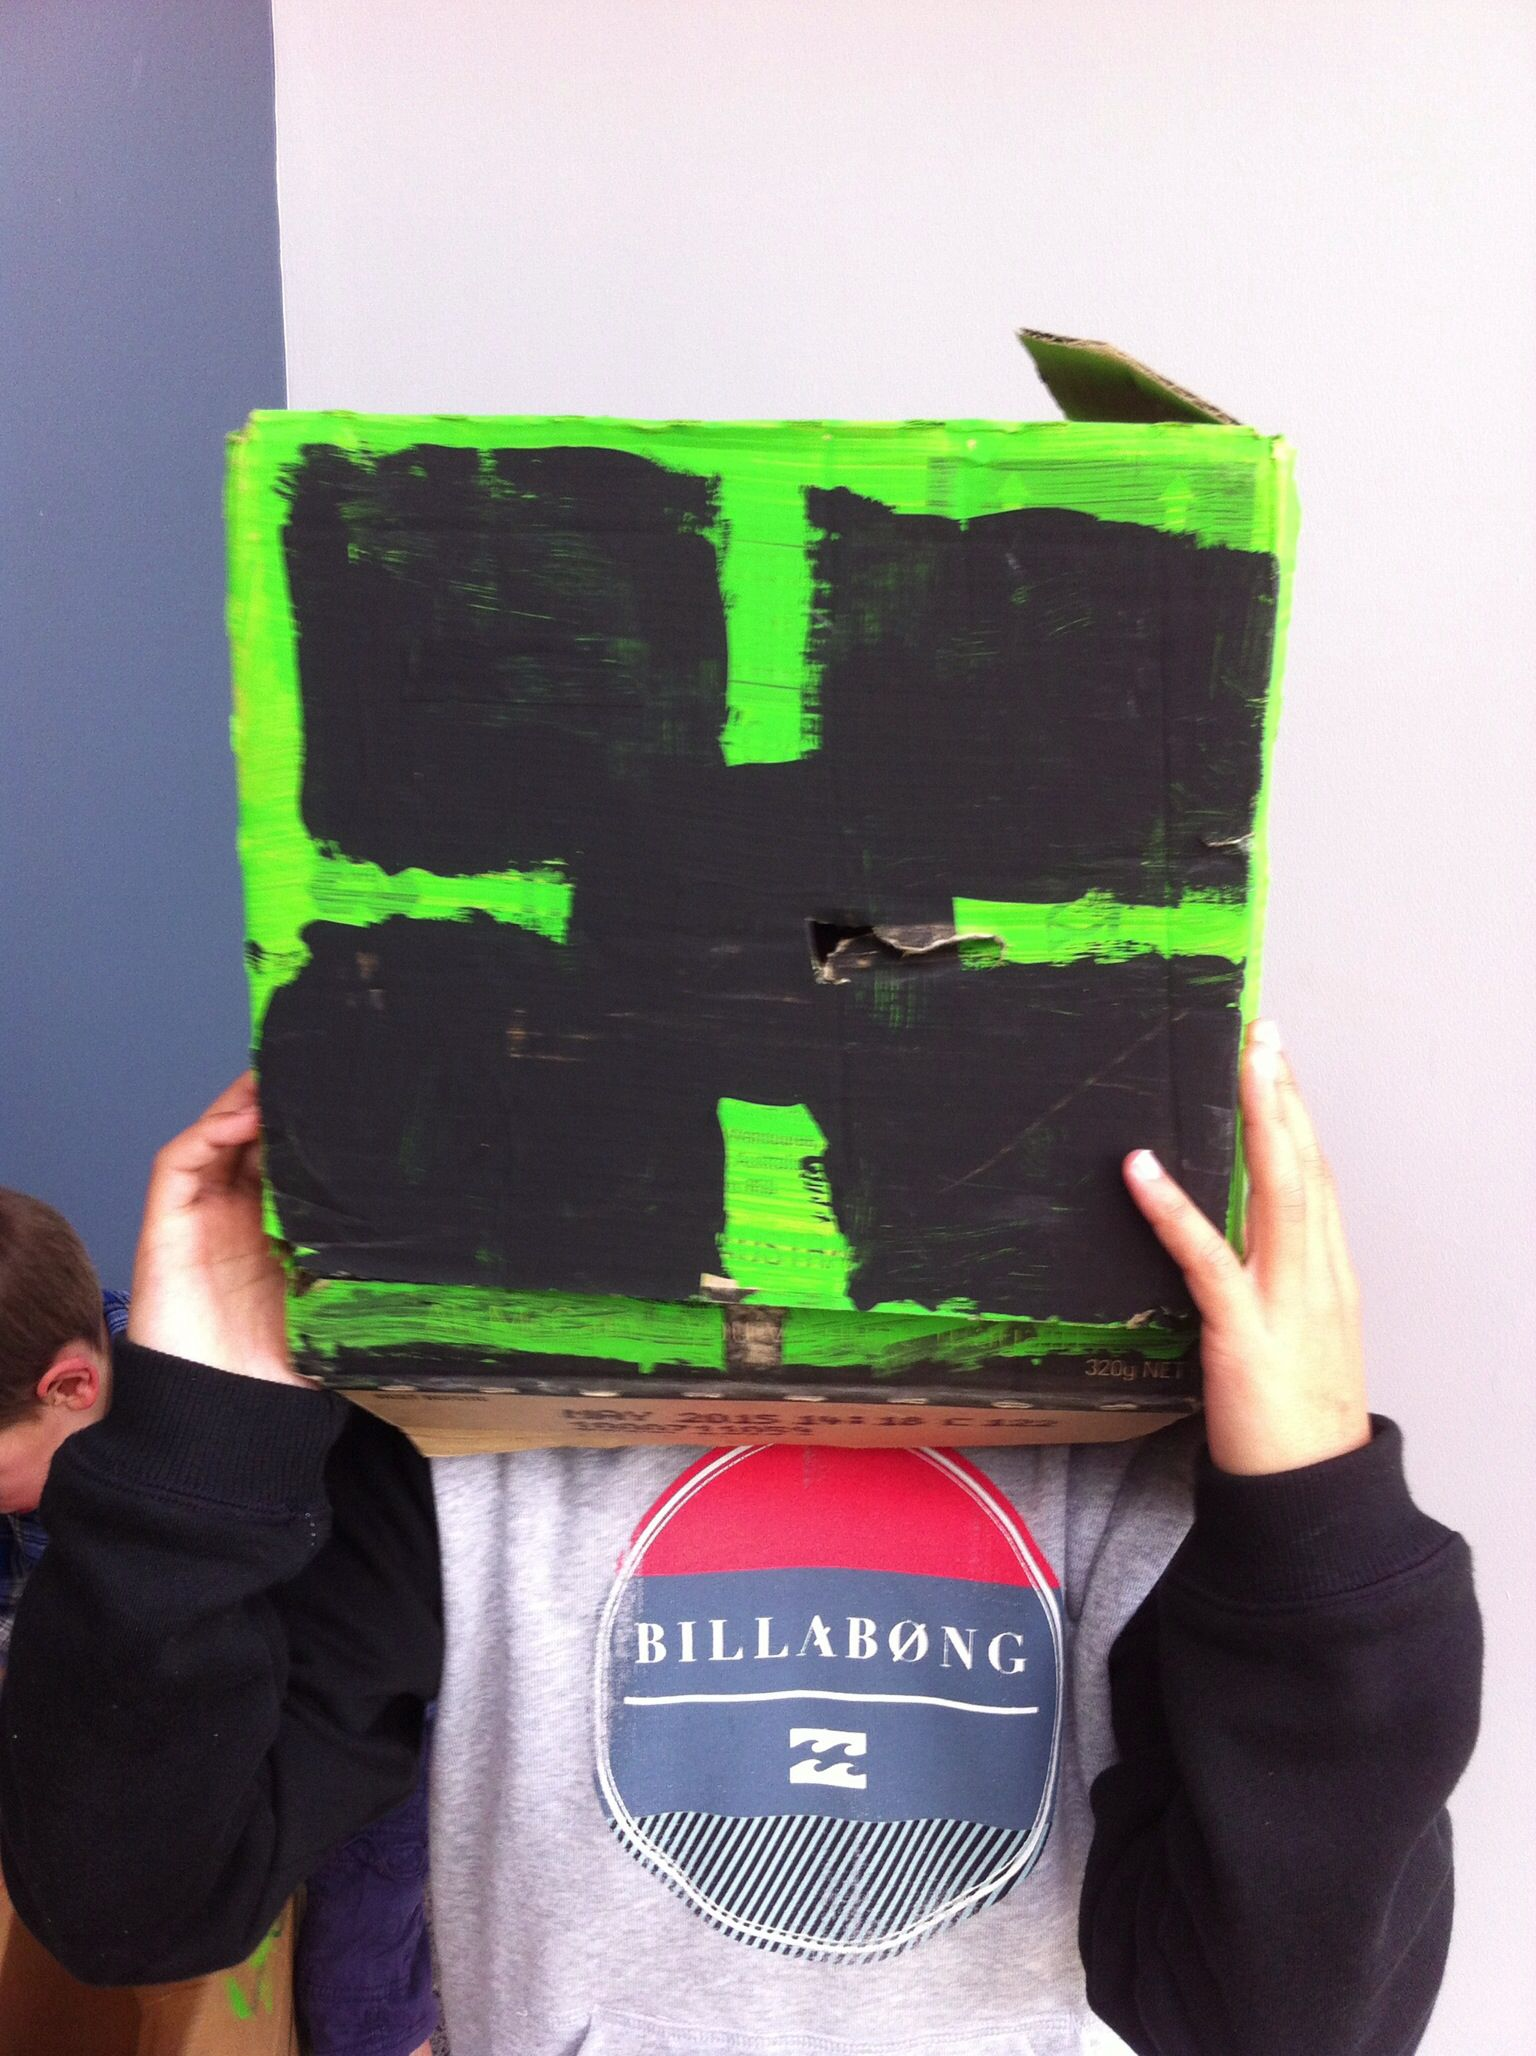 The left over head of our creeper who was in the relay obstacle course game.  The boys LOVED this game, but sadly the creeper not so much:(  N.B I know the face isn't strictly correct, but that's what happens when little kids want to help paint!